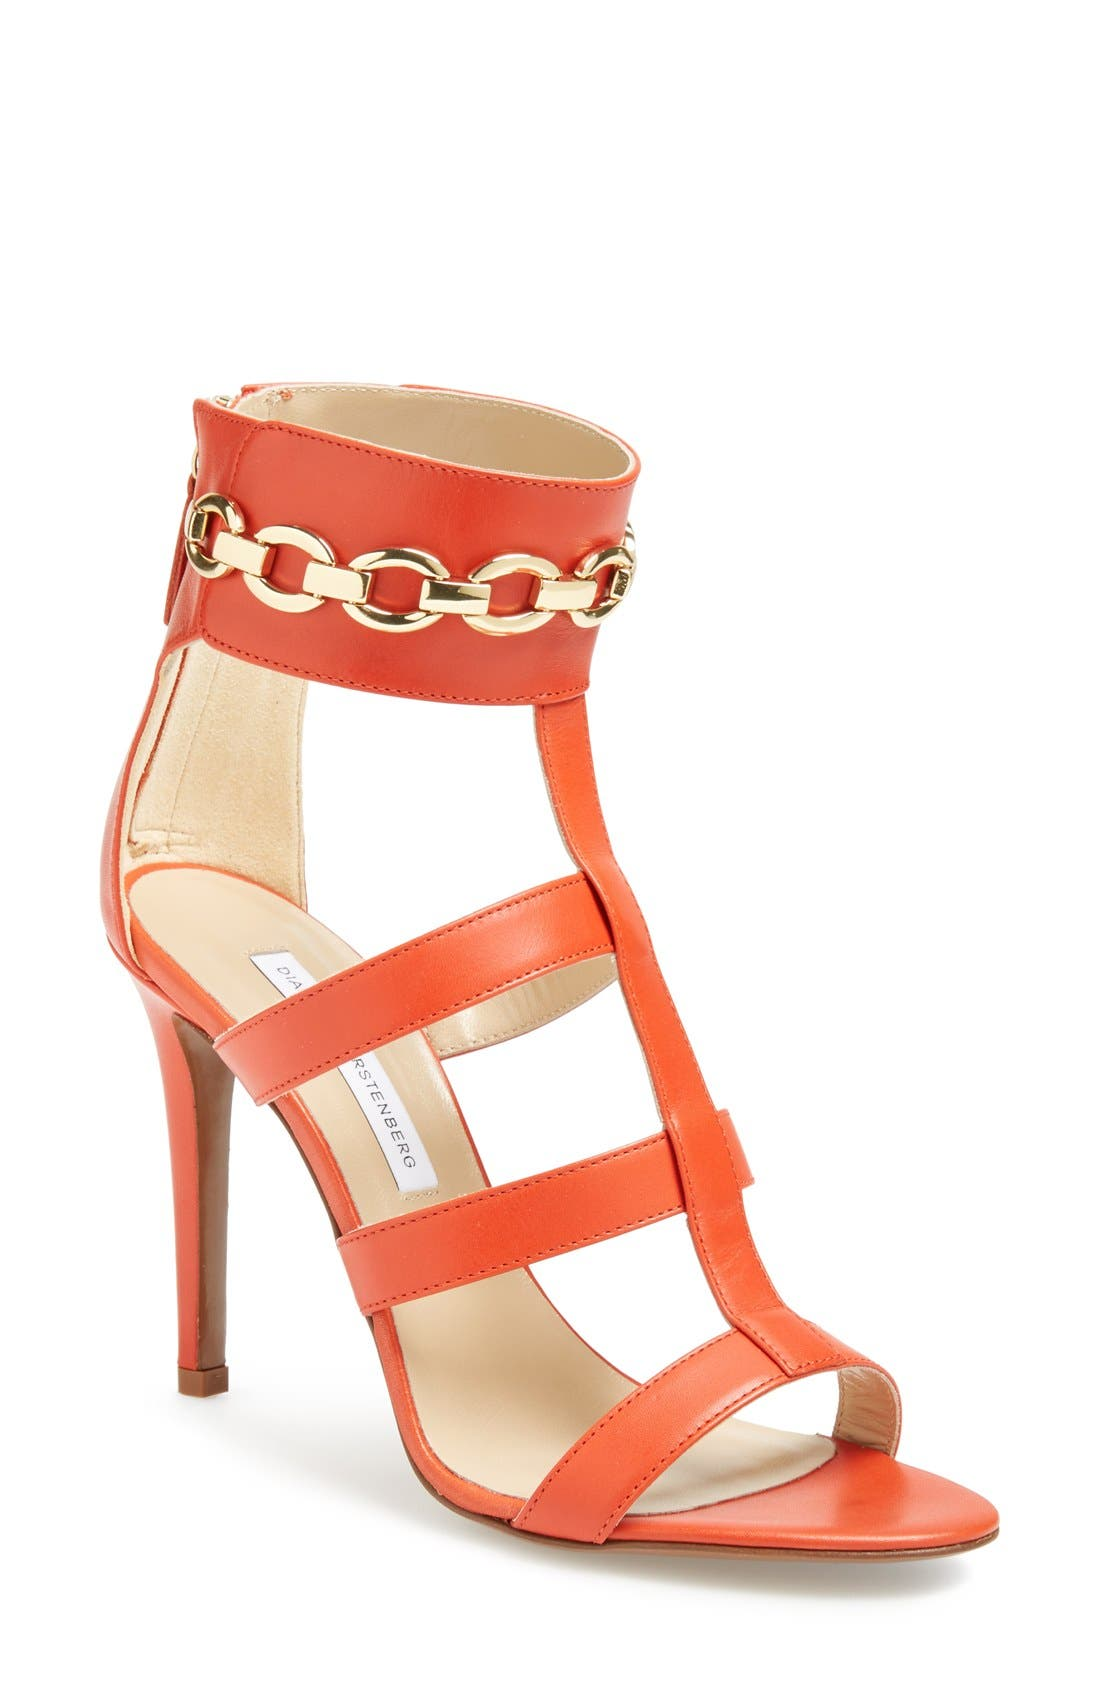 Main Image - Diane von Furstenberg 'Uma' Leather Sandal (Women)